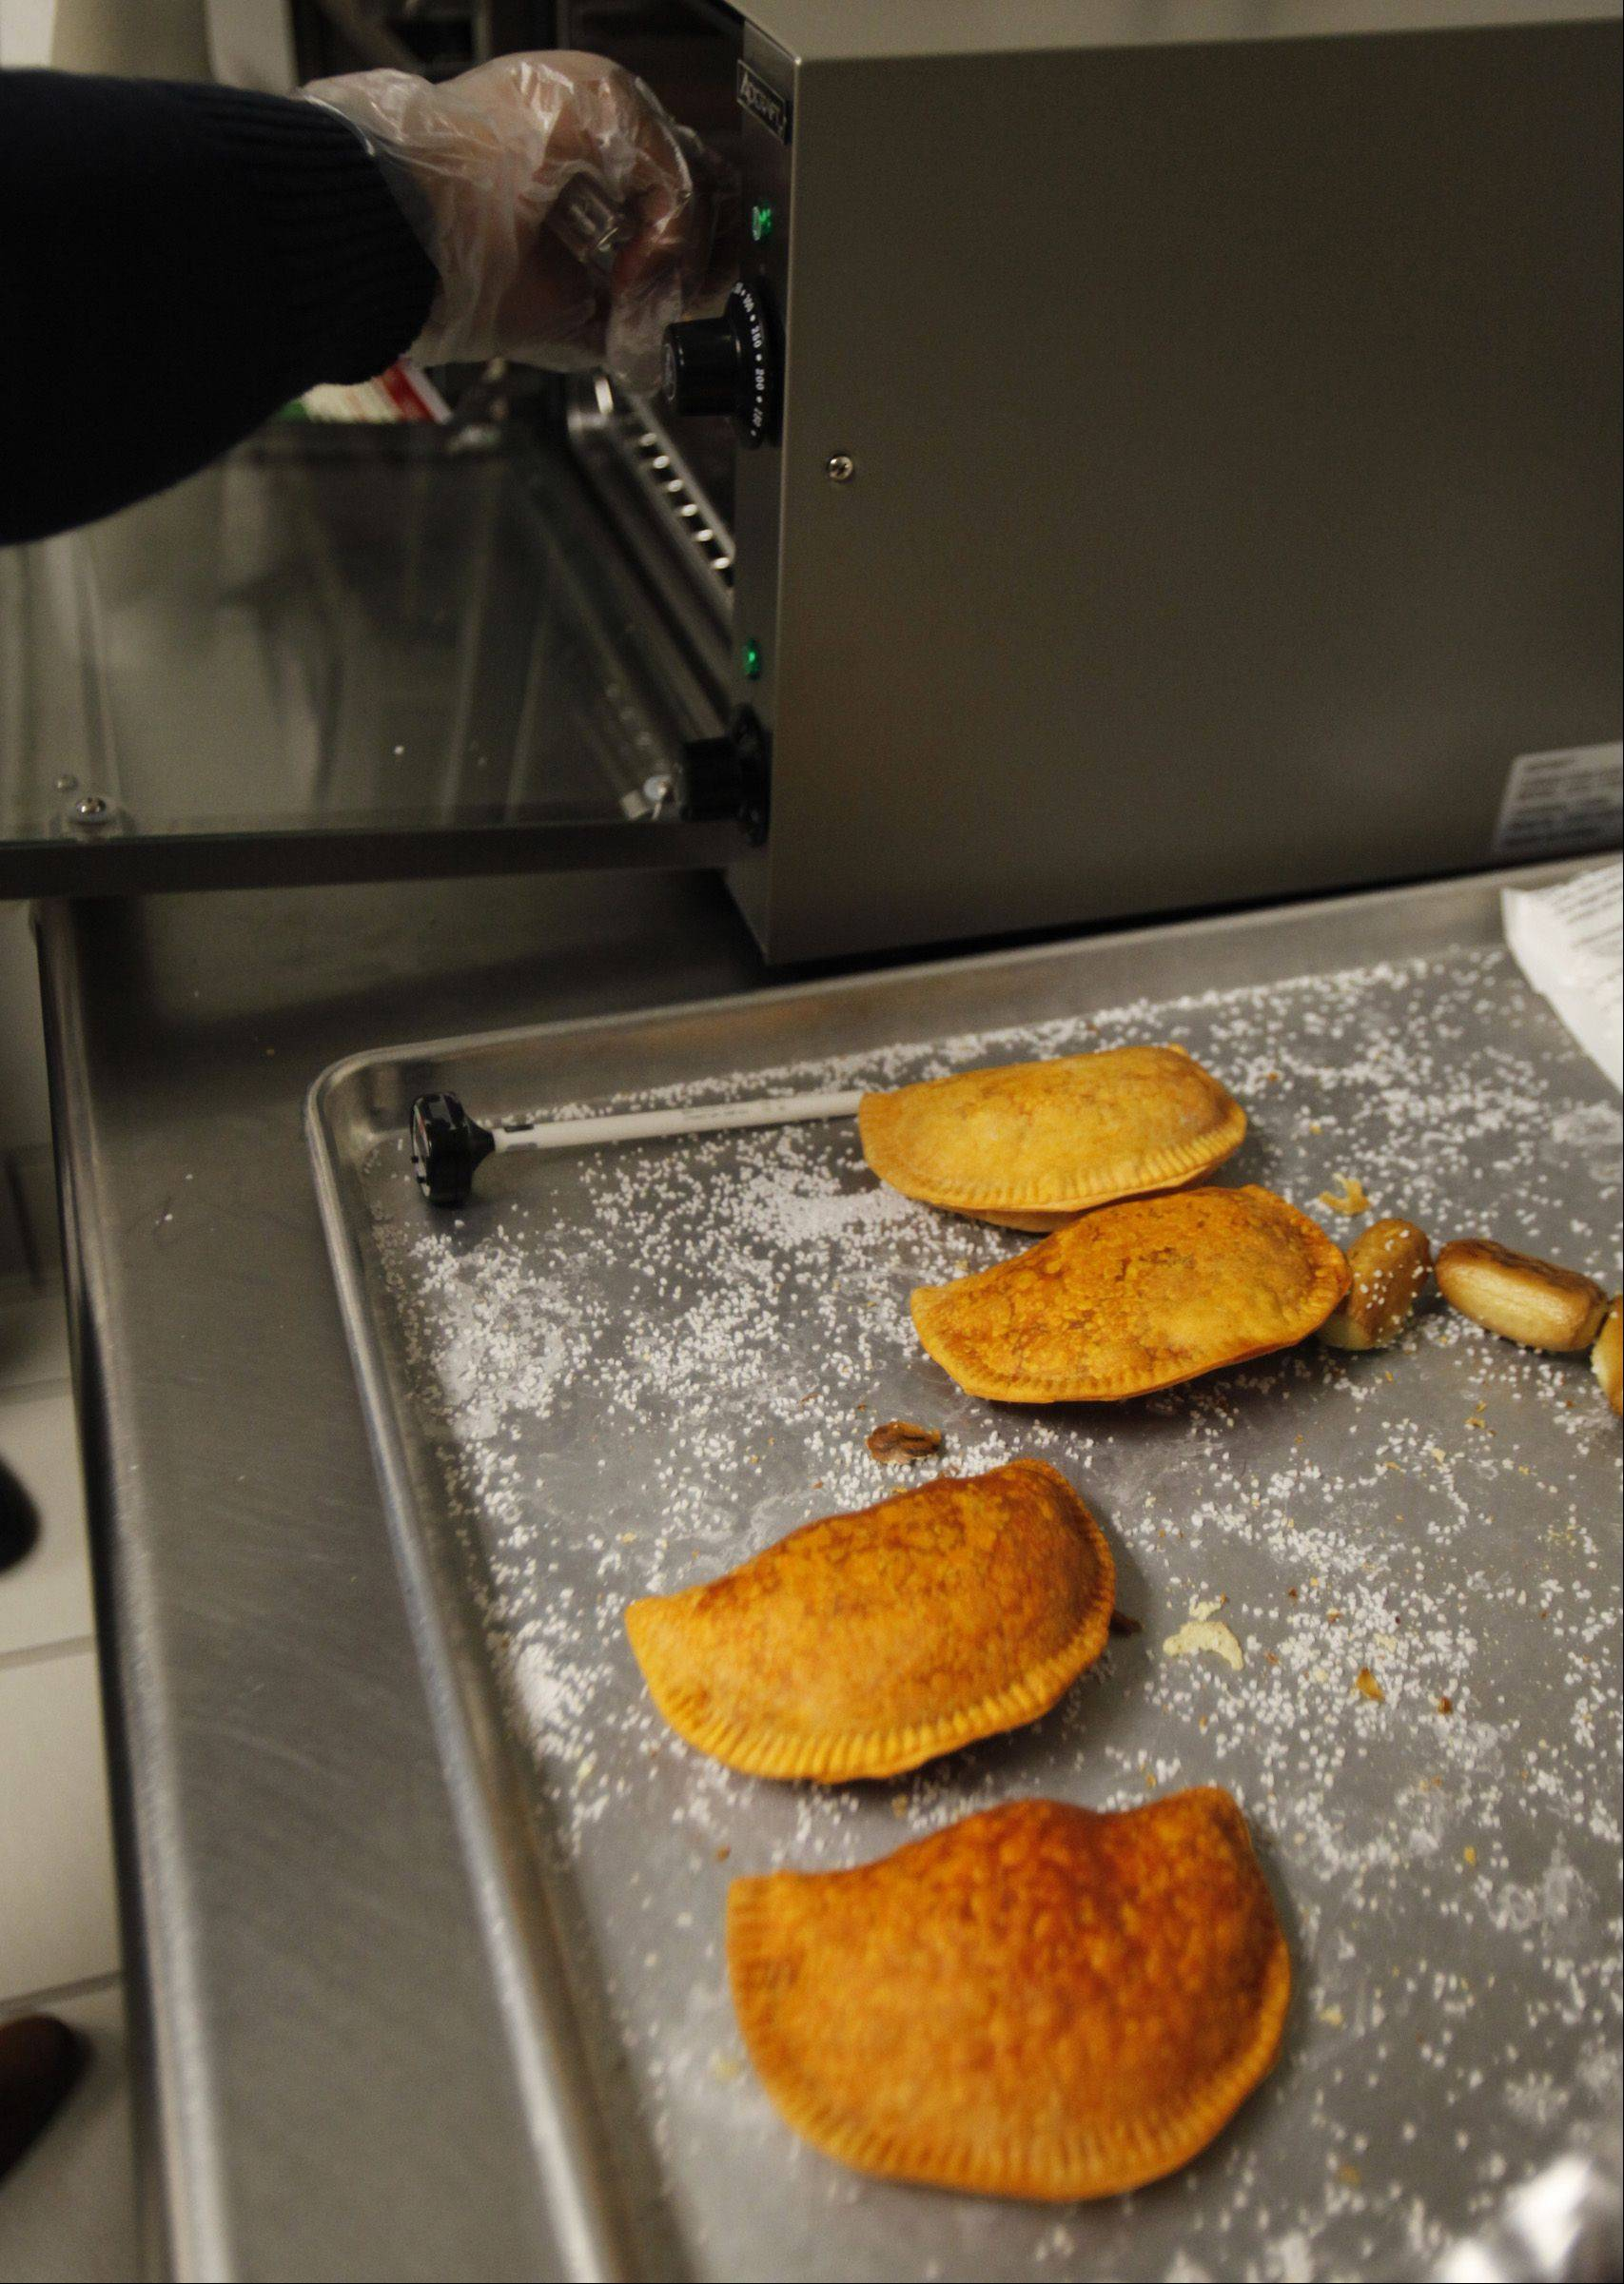 Kevin Echevarria removes some empanadas from an oven last Friday morning at Classic Cinemas' Charlestowne 18 in St. Charles. The movie theater began selling Rria Foods' empanadas that day on a trial basis. The company will follow suit at more locations if sales go well, the theater's general manager said.